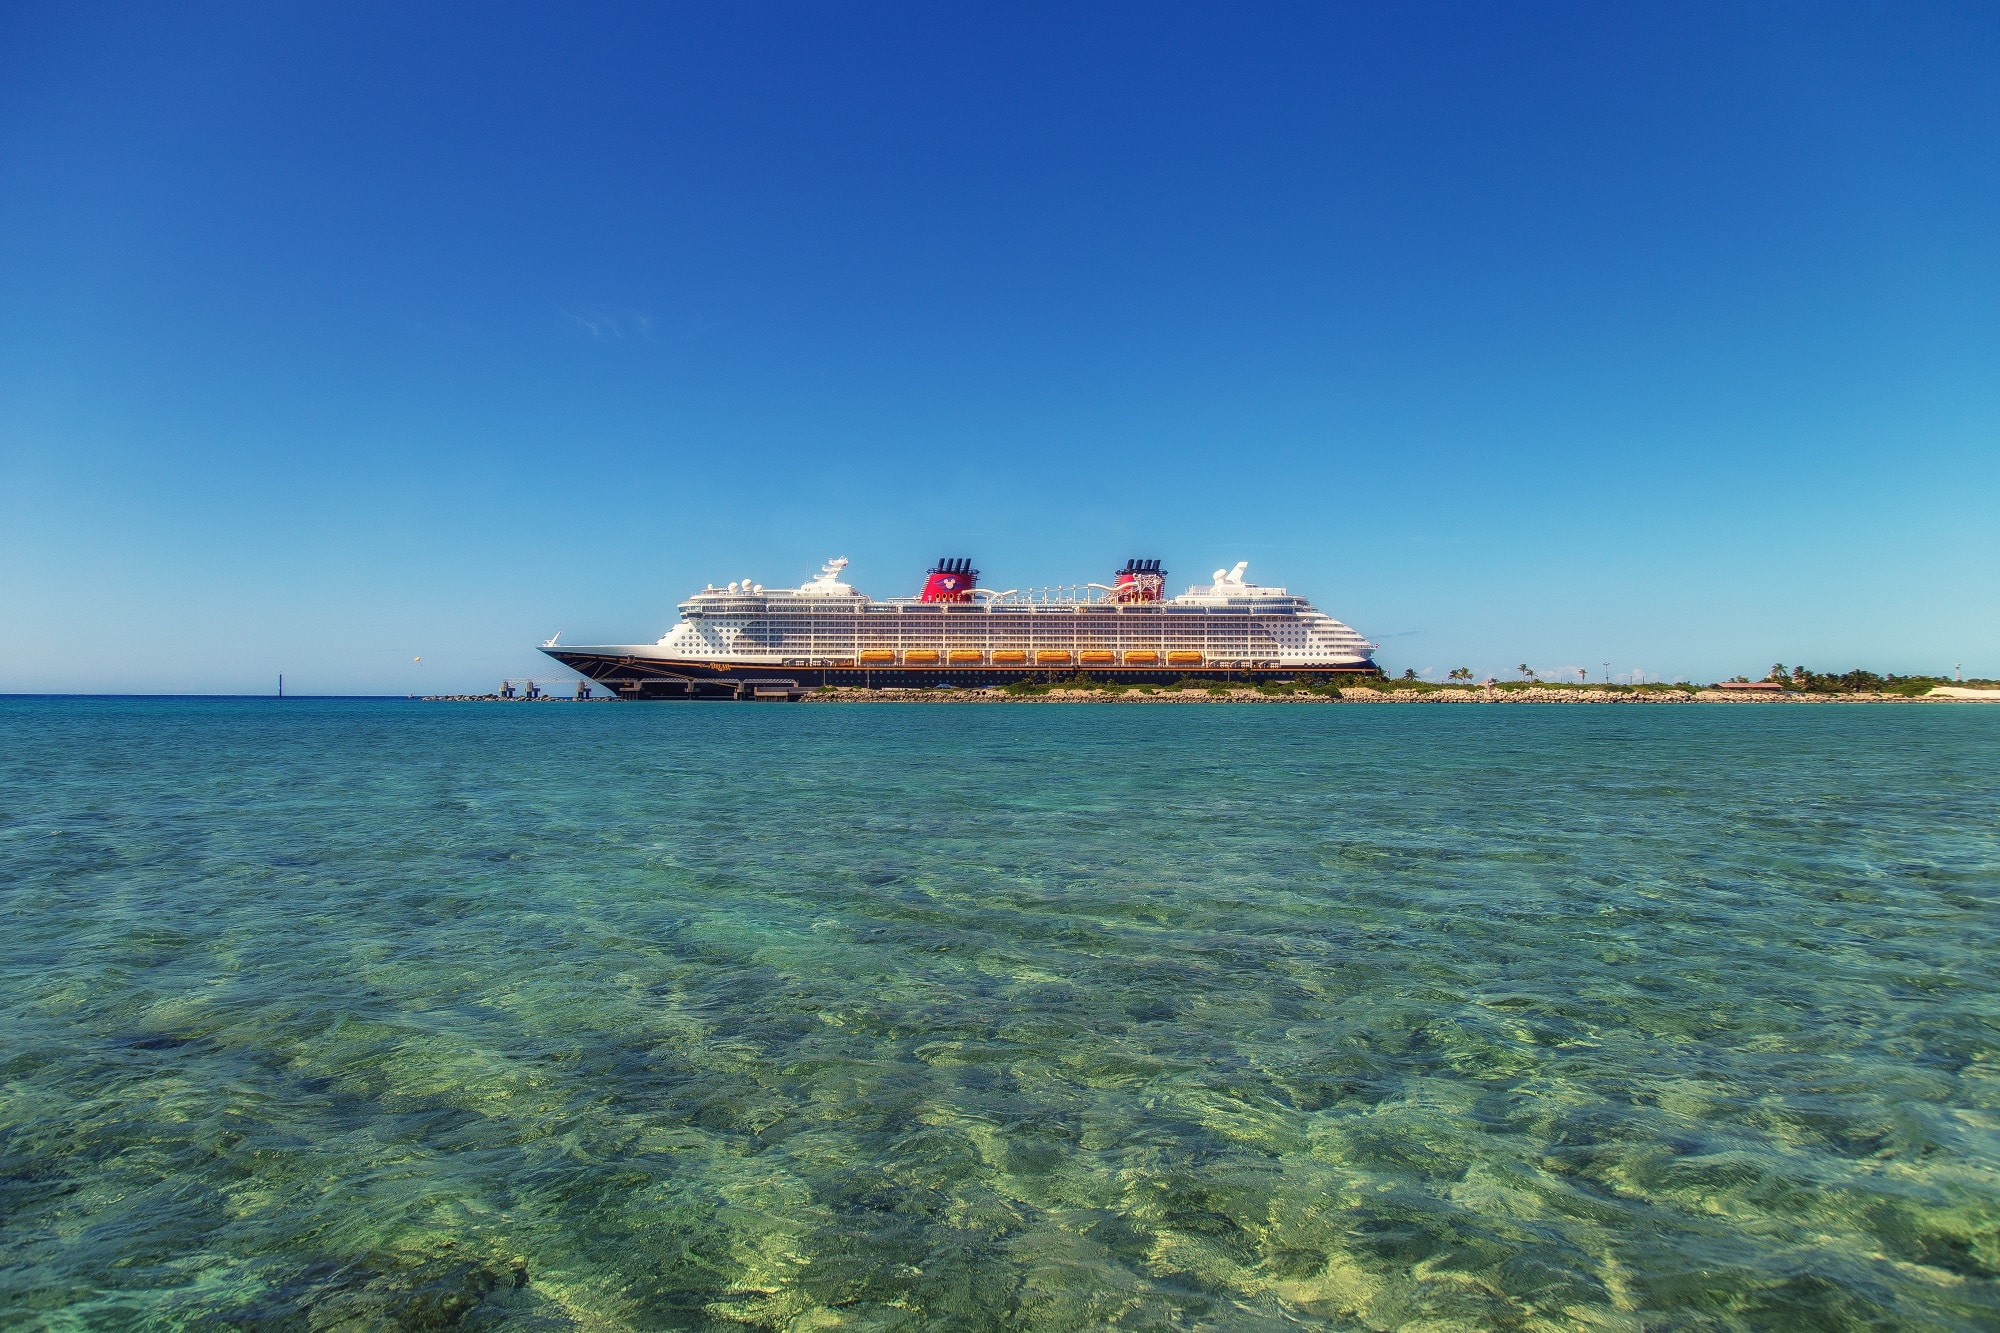 A cruise ship in shallow, crystalline blue waters